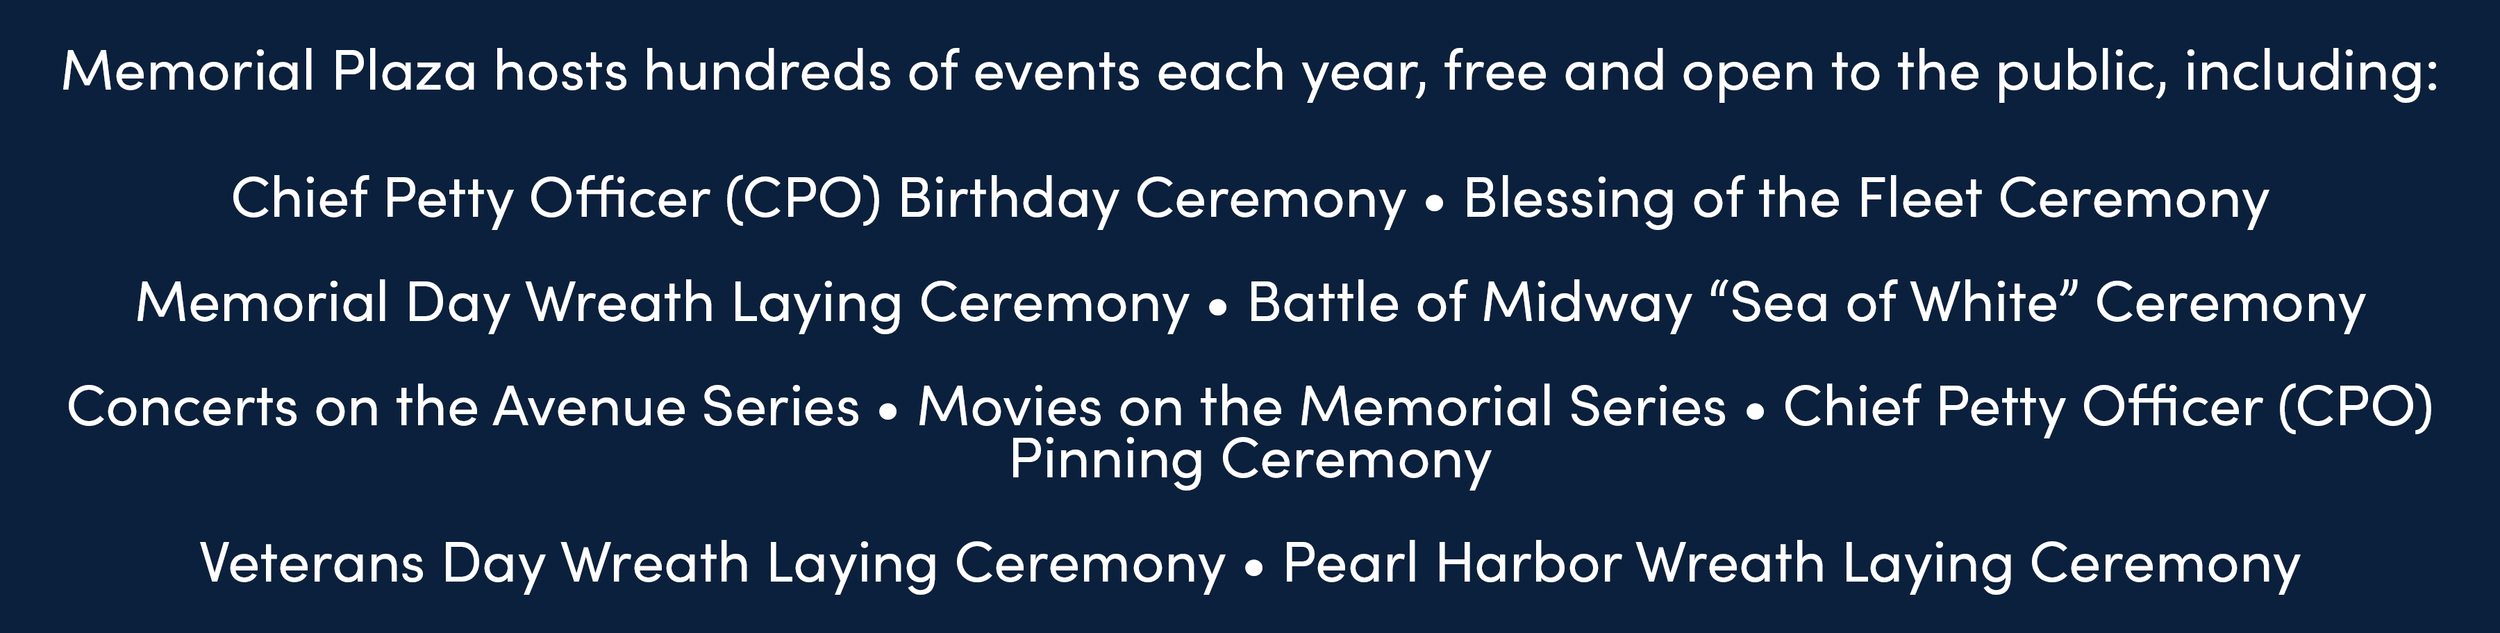 Memorial Plaza Events Navy Box.png